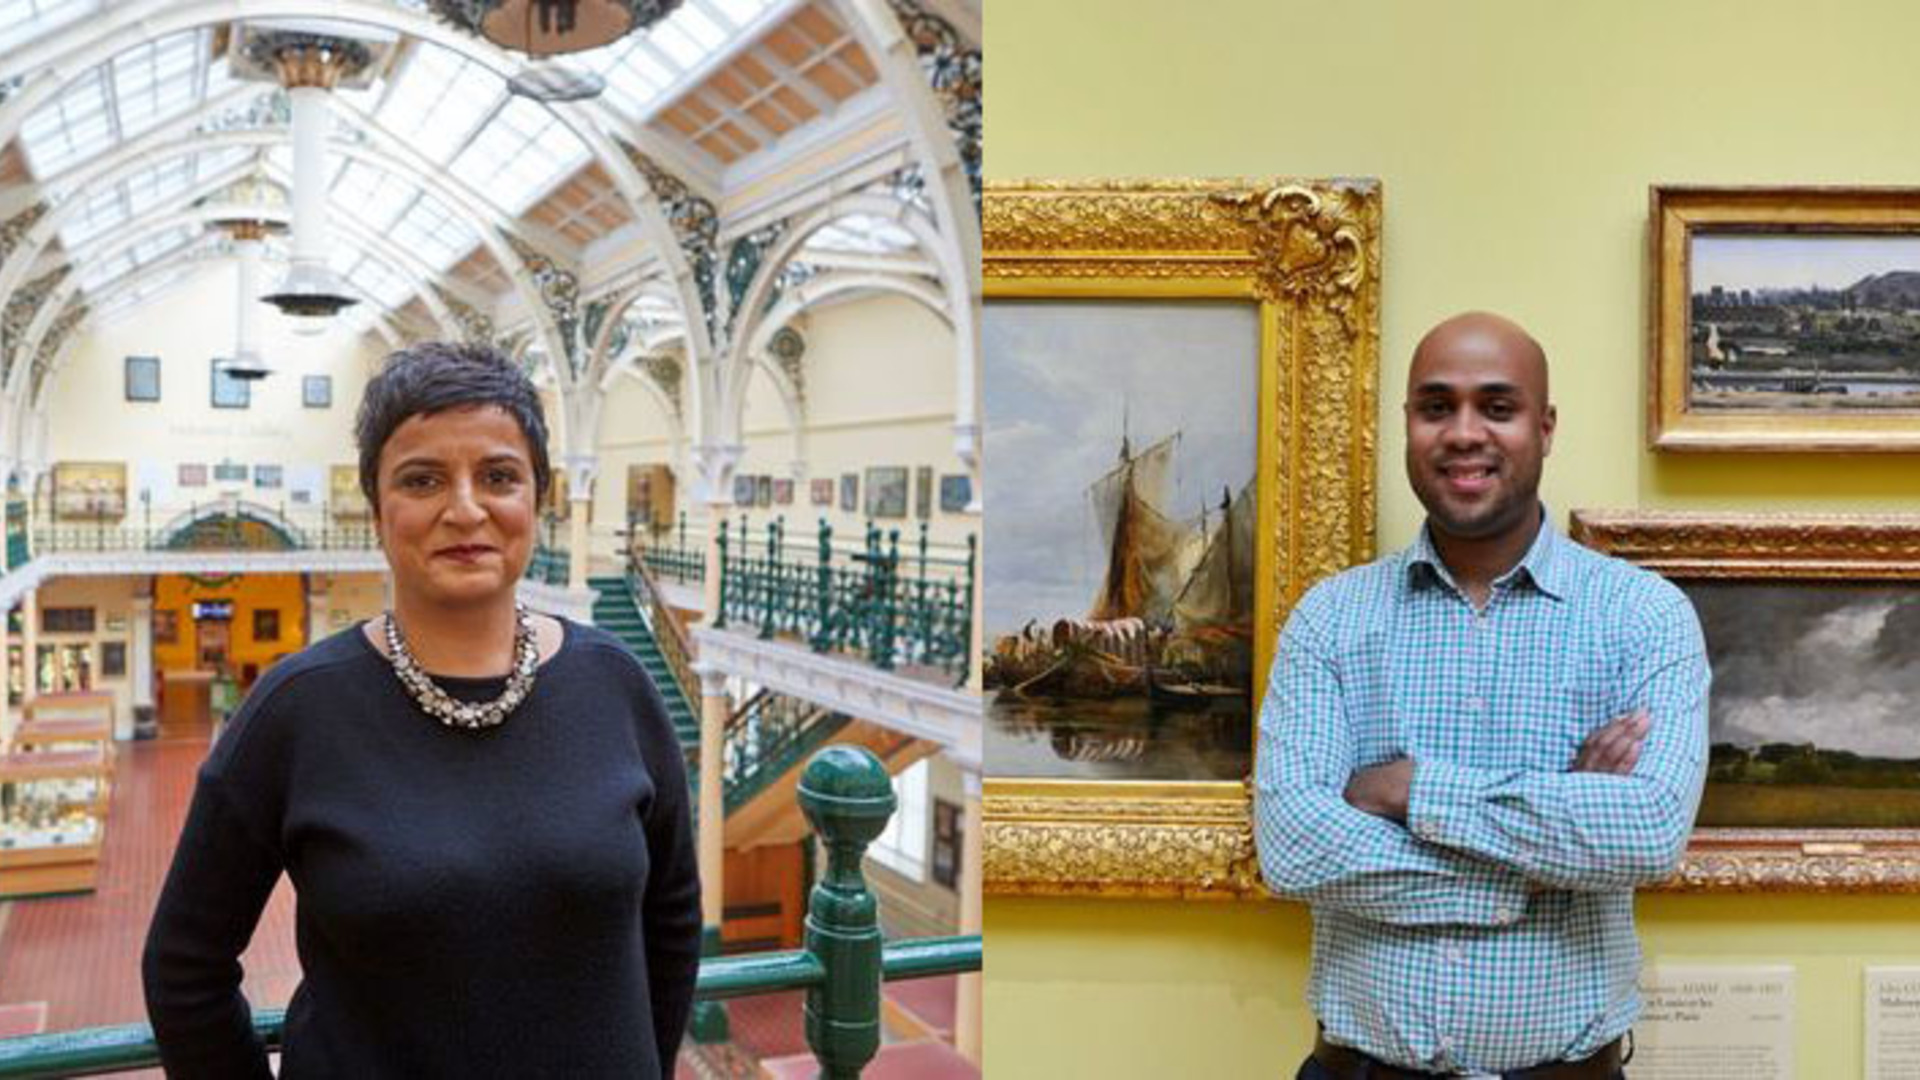 Zak%20mensah%20and%20sara%20wajid%20appointed%20joint%20ceos%20of%20birmingham%20museums%20trust%20%282%29%202